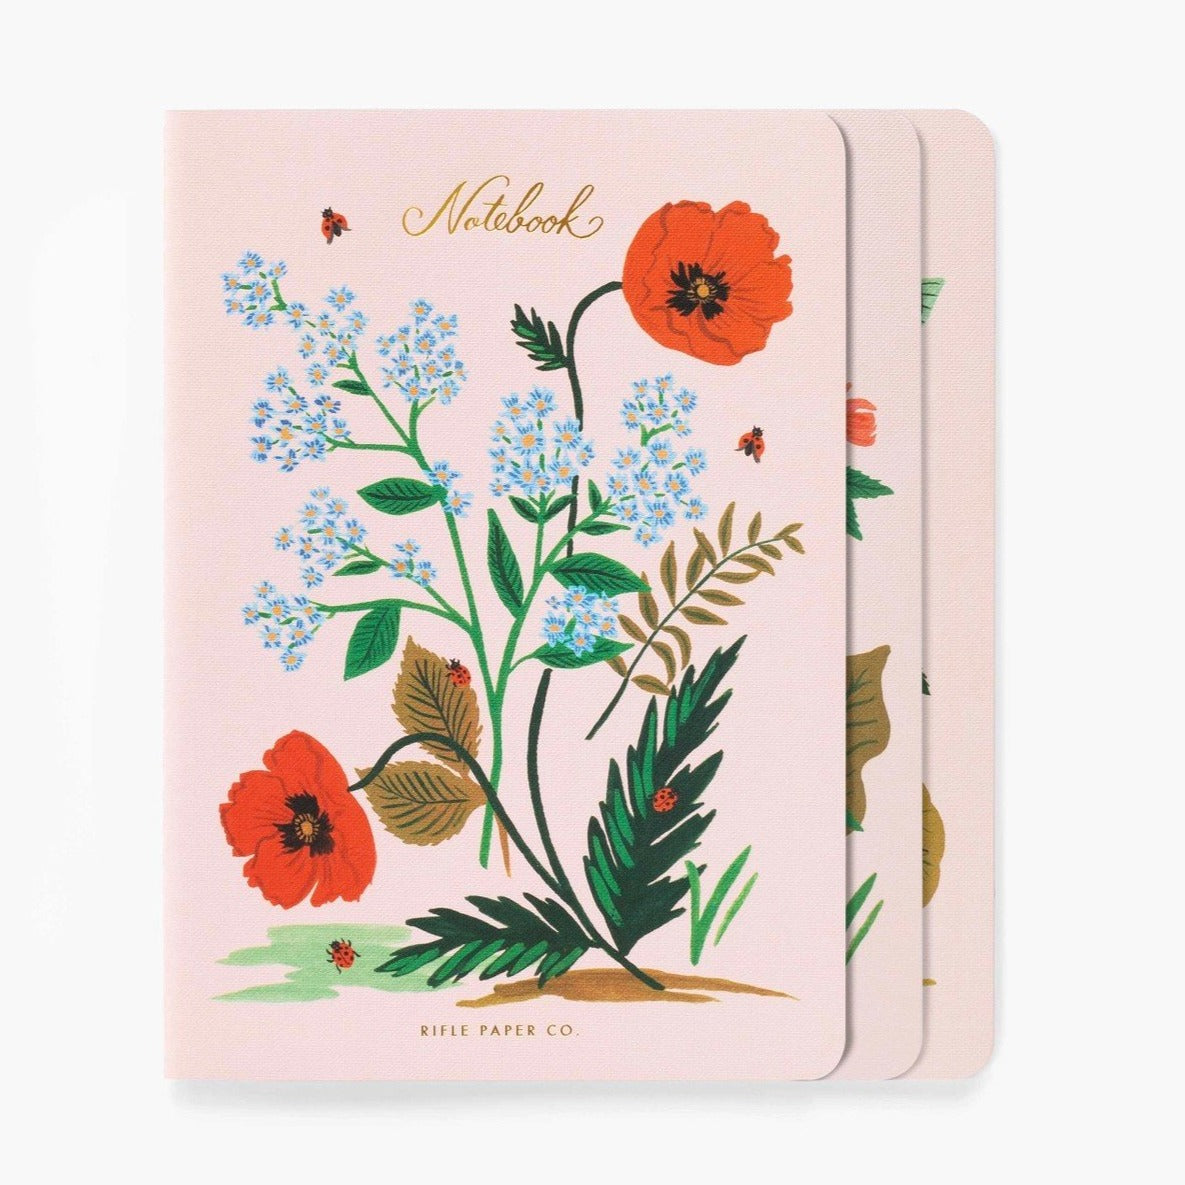 Rifle Paper Co. - Notebook 3-Pack - Botanical